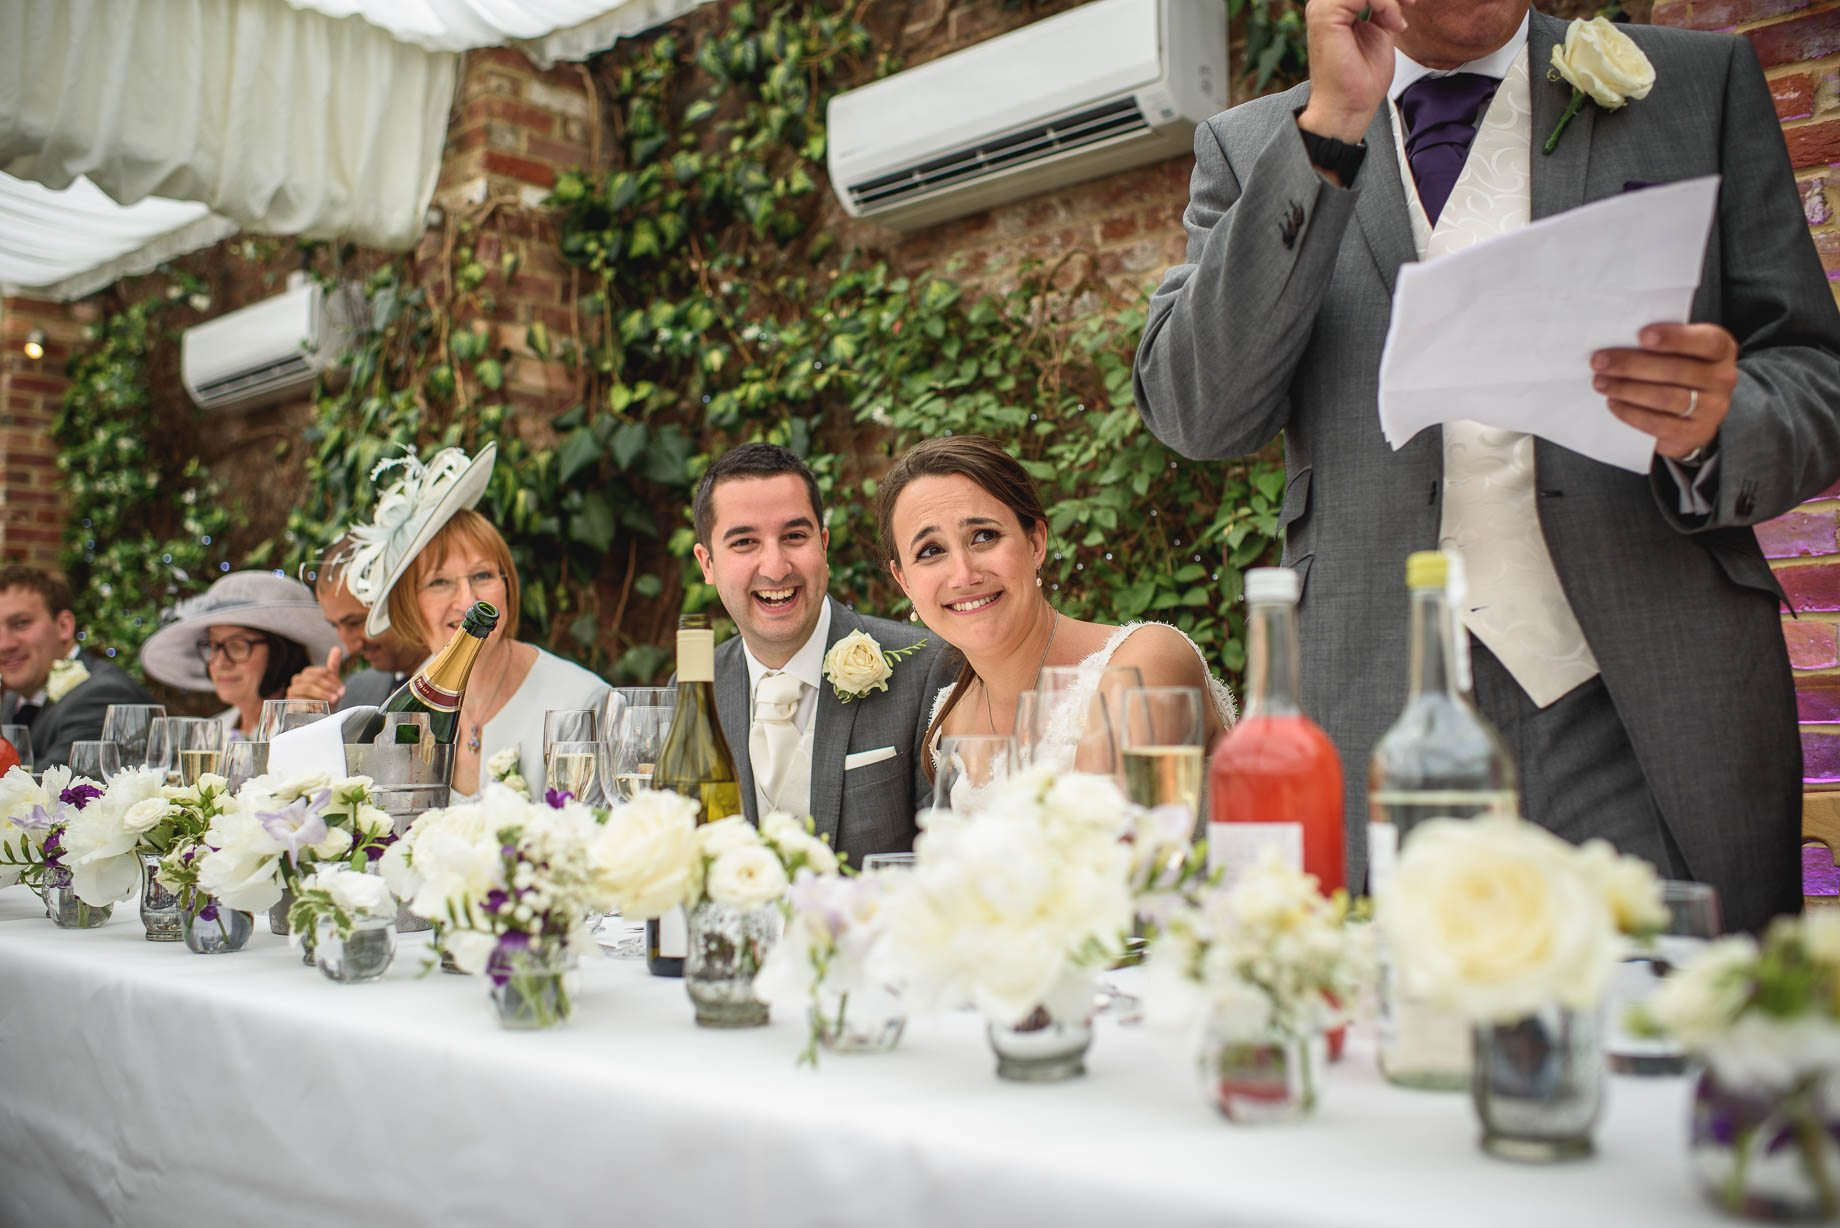 Northbrook House wedding photography - Katrina and Michael (129 of 172)